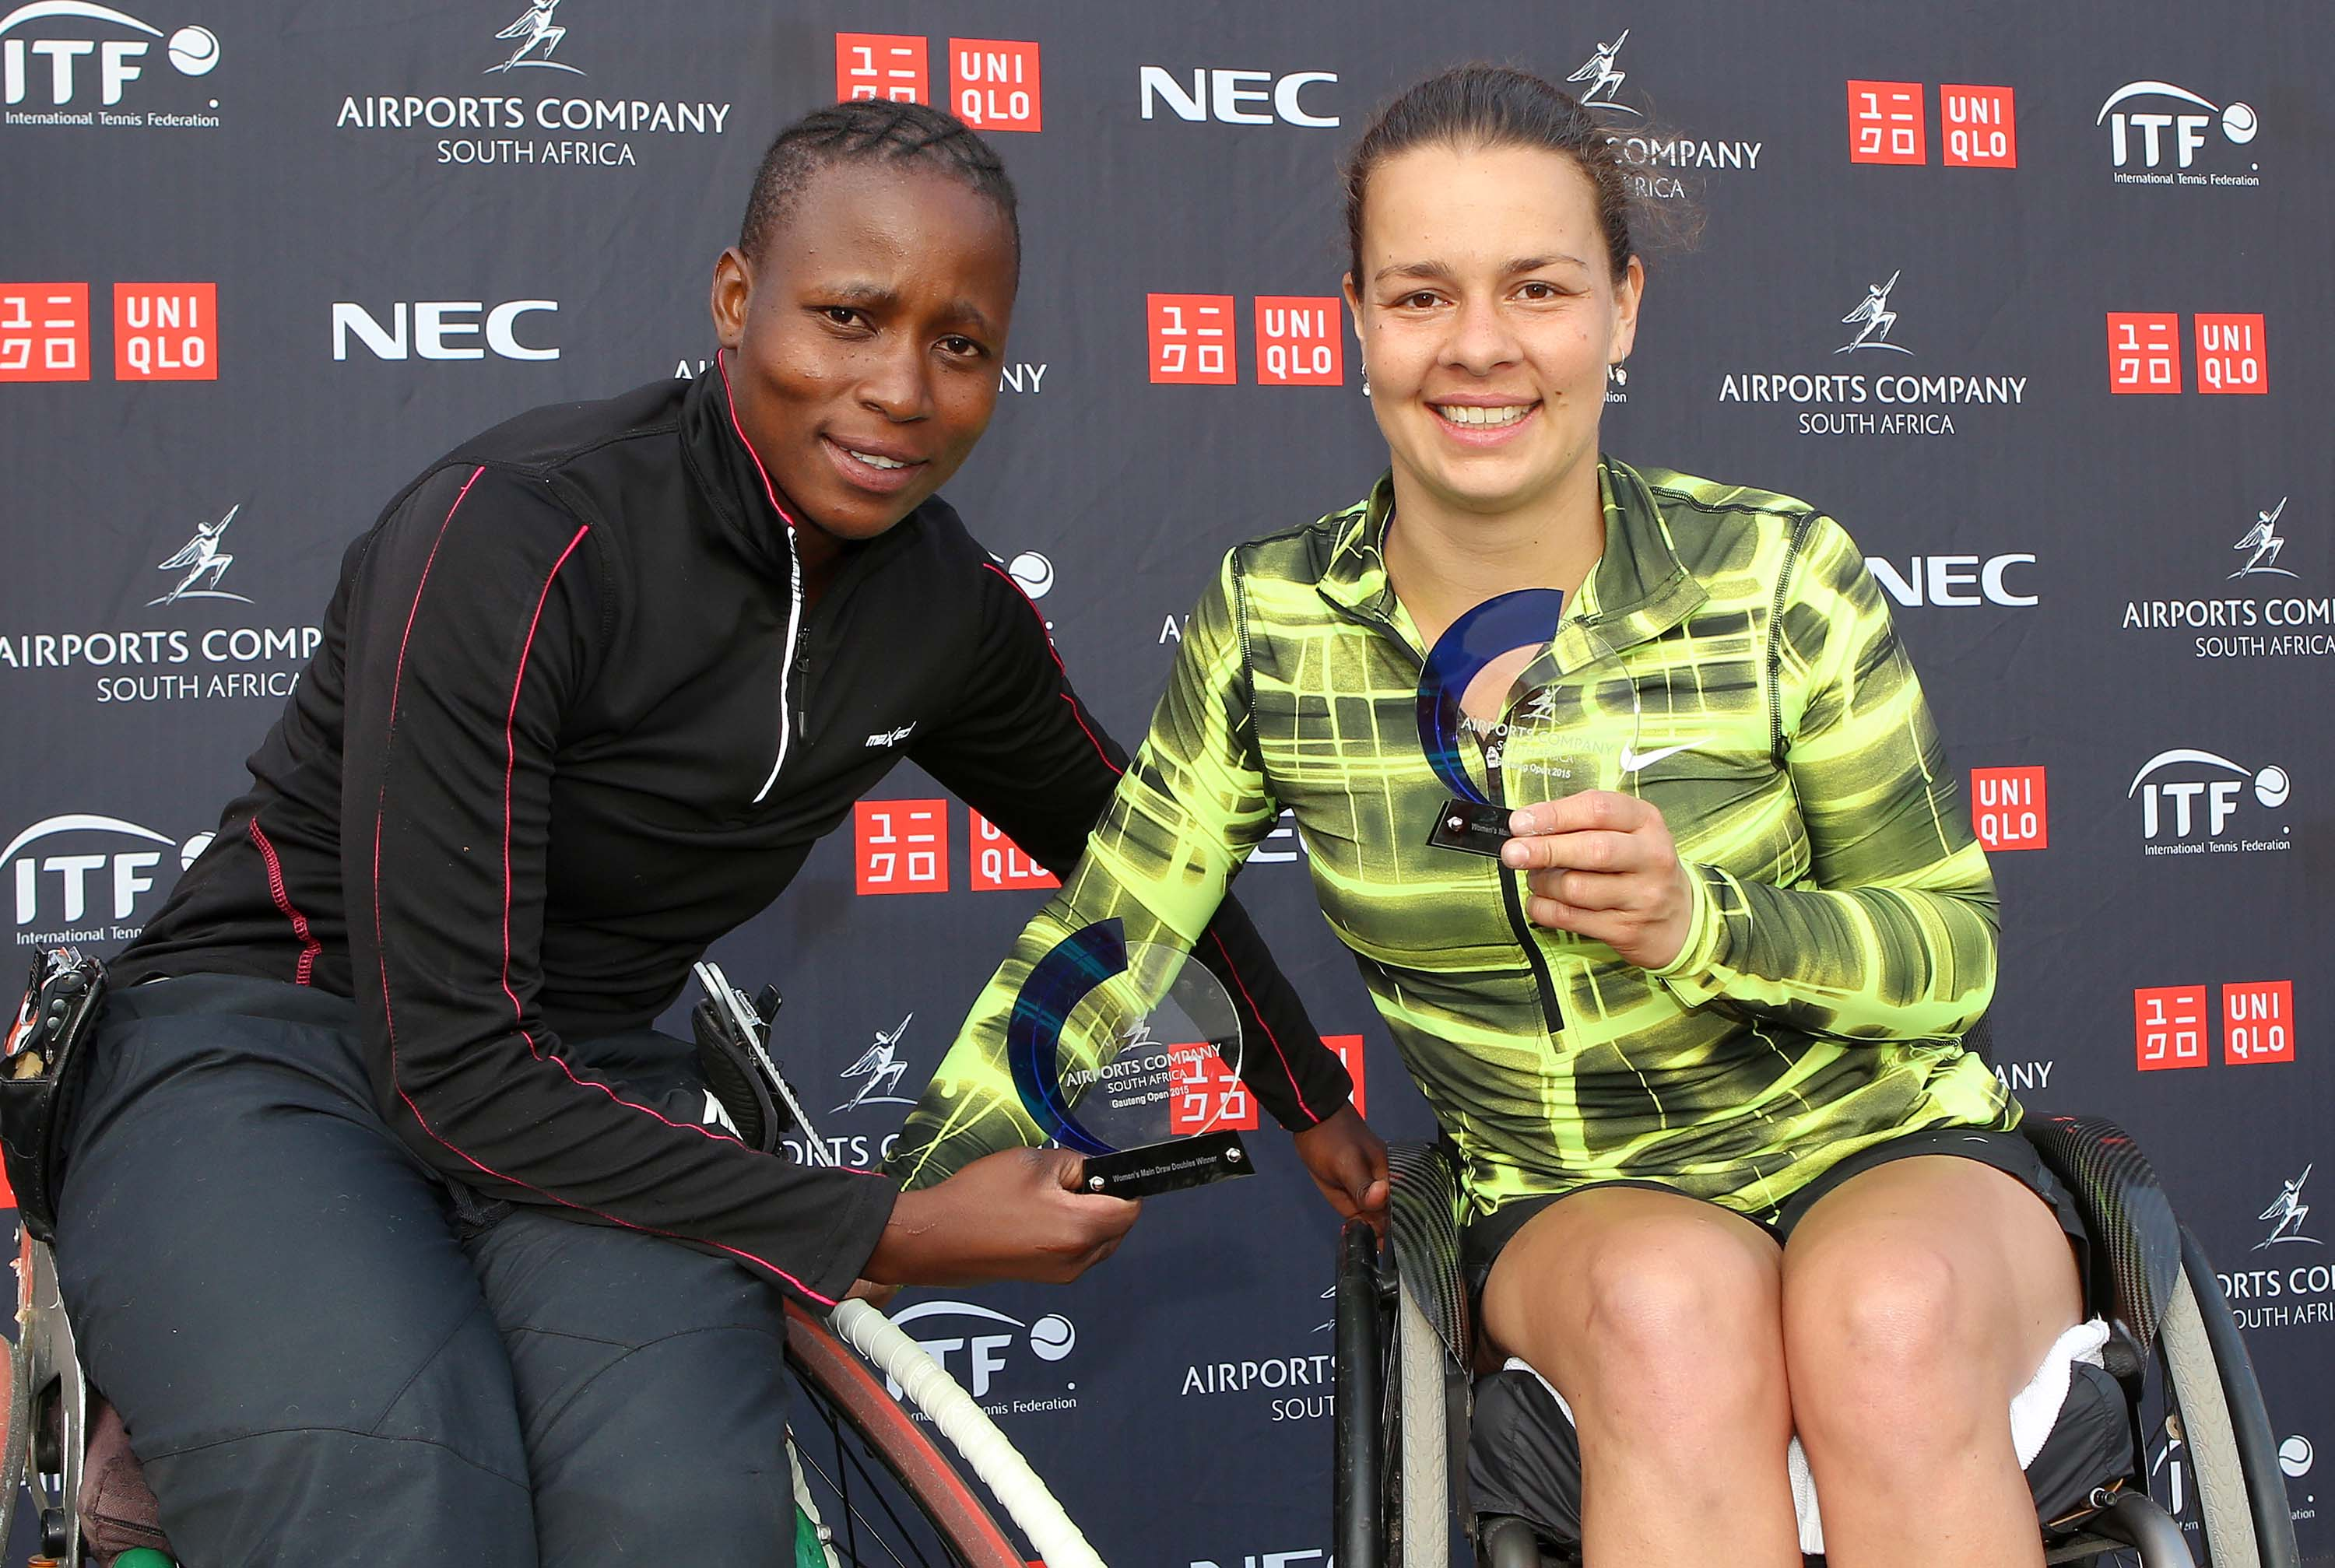 Montjane, Sithole downed in singles but KG still wins a trophy